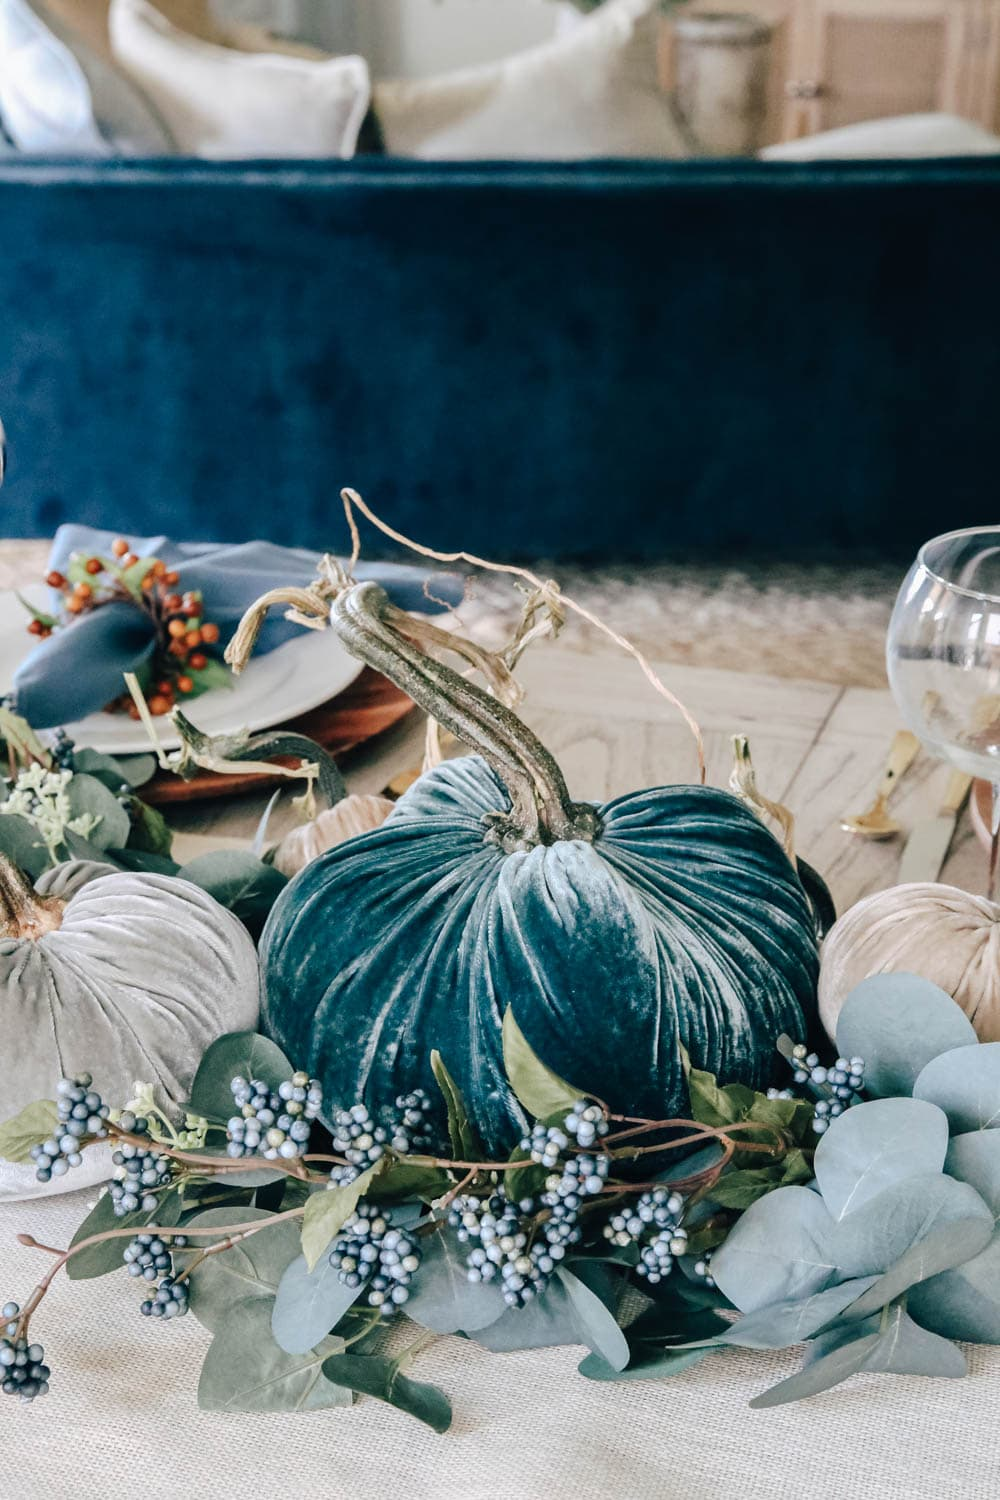 The most gorgeous shades of blue in these velvet pumpkins. #ABlissfulNest #fall #thanksgiving